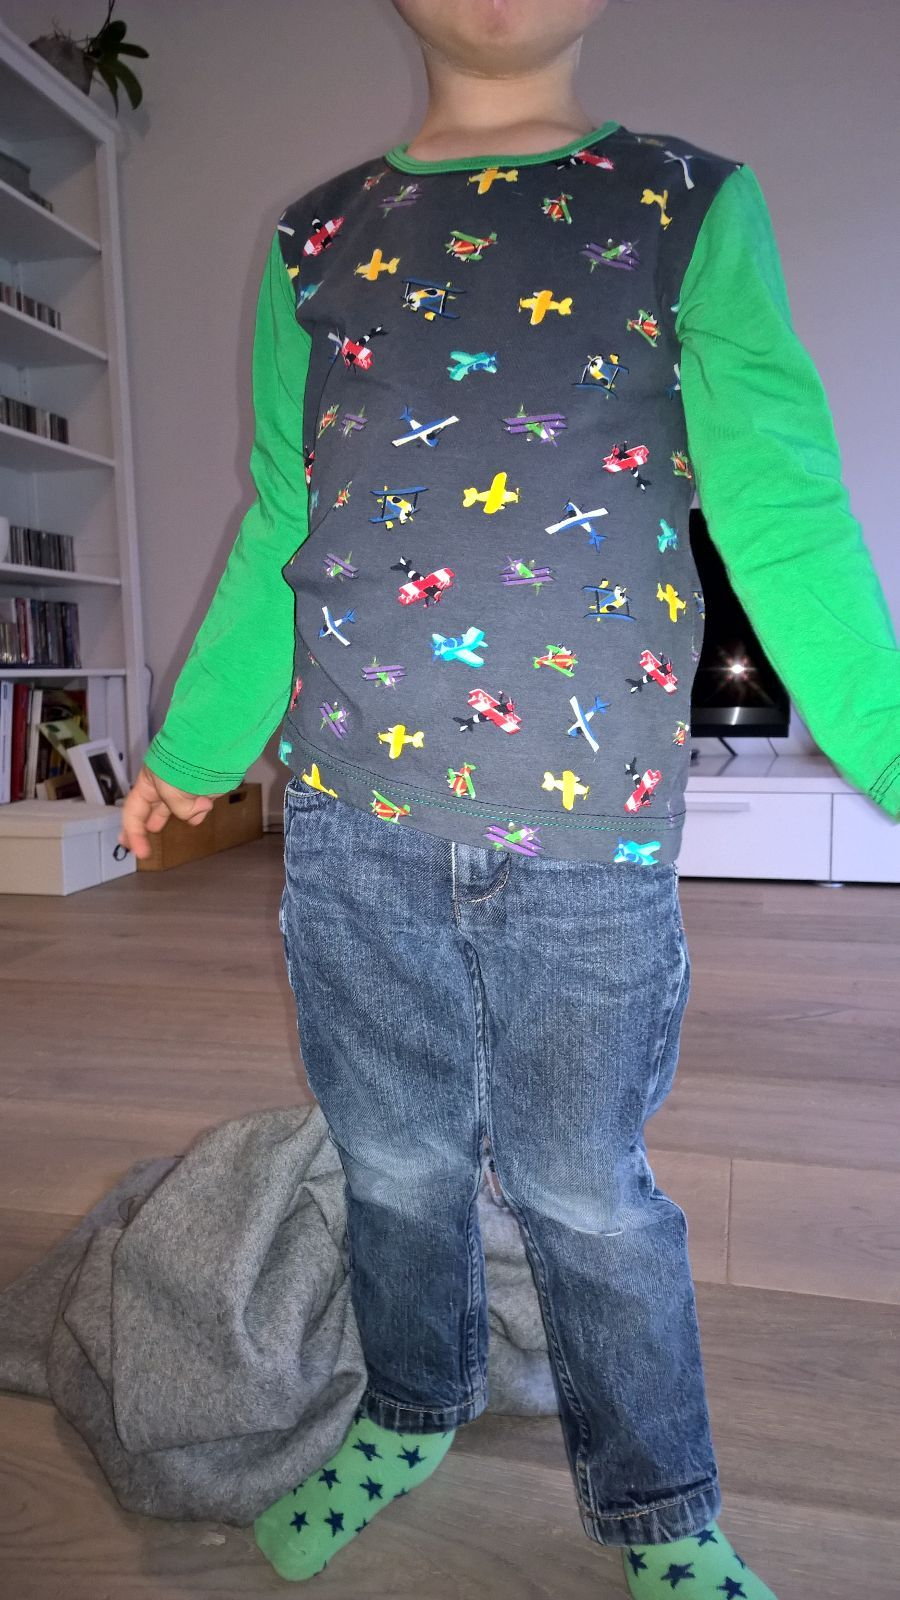 Kindershirt Paul von pattydoo  https://www.pattydoo.de/schnittmuster-kinder